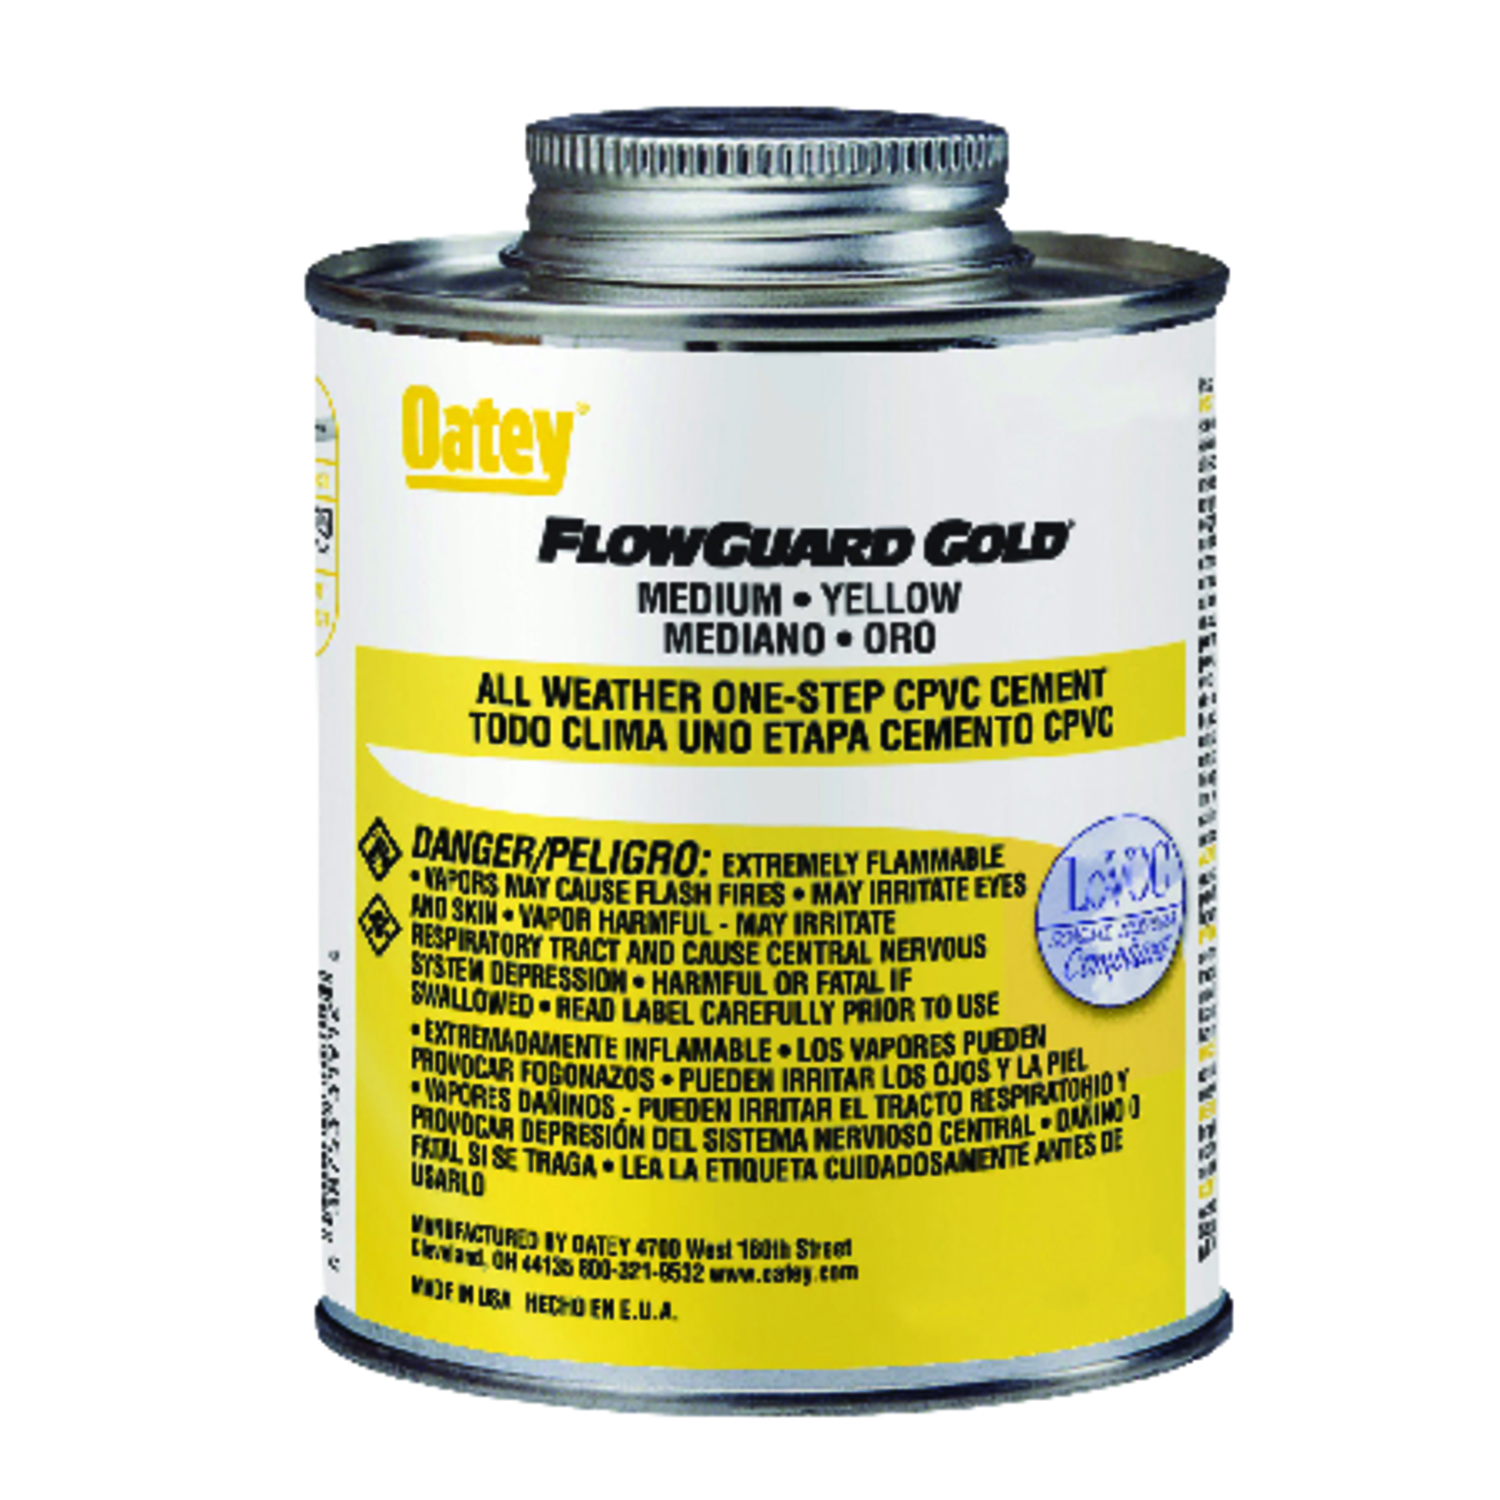 Oatey  FlowGuard Gold All Weather One-Step  Yellow  Cement  8 oz. For CPVC